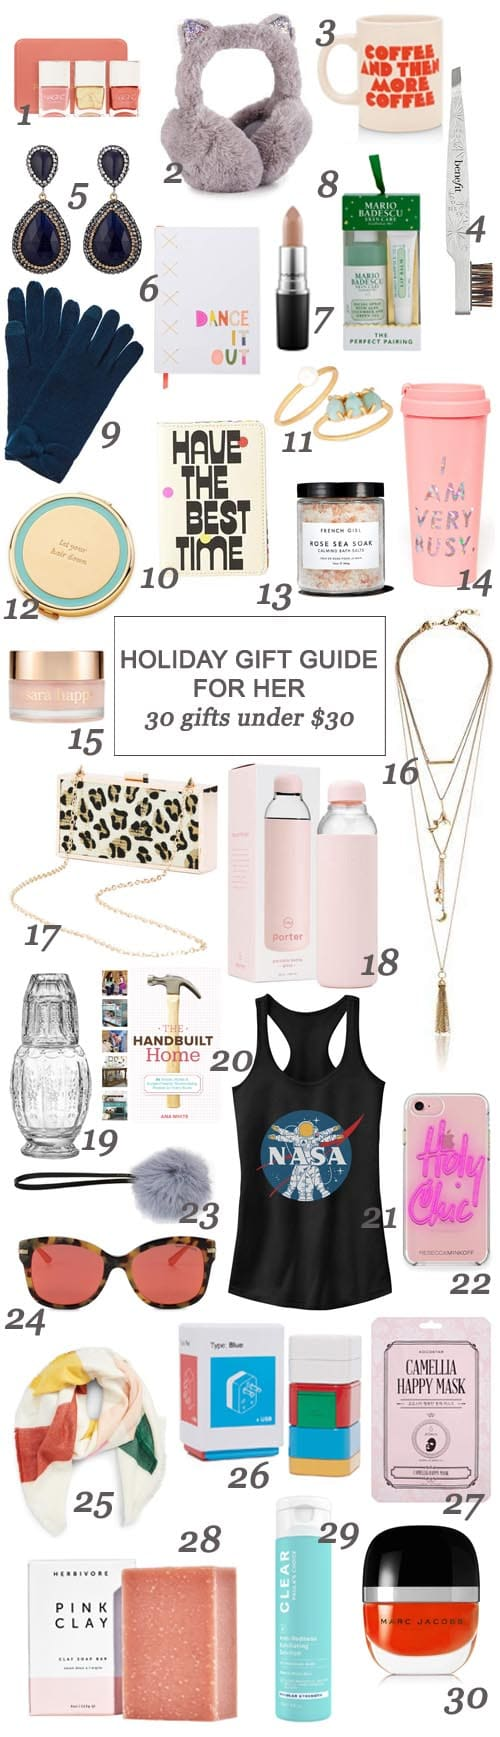 San Antonio lifestyle blogger, Cris Stone, has gathered up a fab collection of gift options for your sister, bestie, niece, mom, and general gal pals - all for under $30!